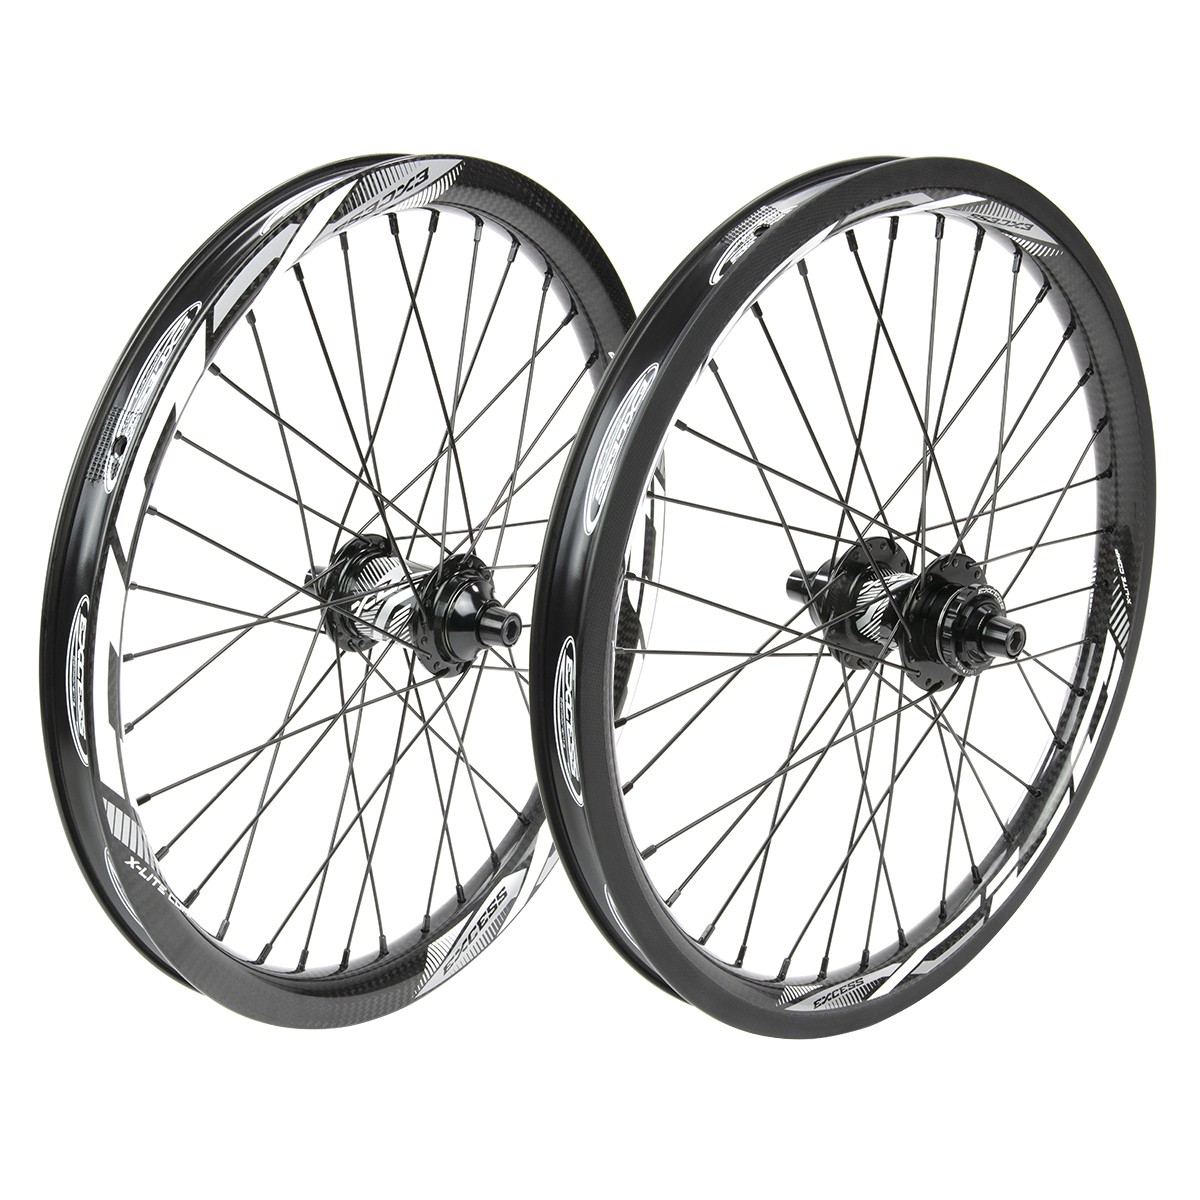 EXCESS XLC-3 406 36H CARBON WHEELSET